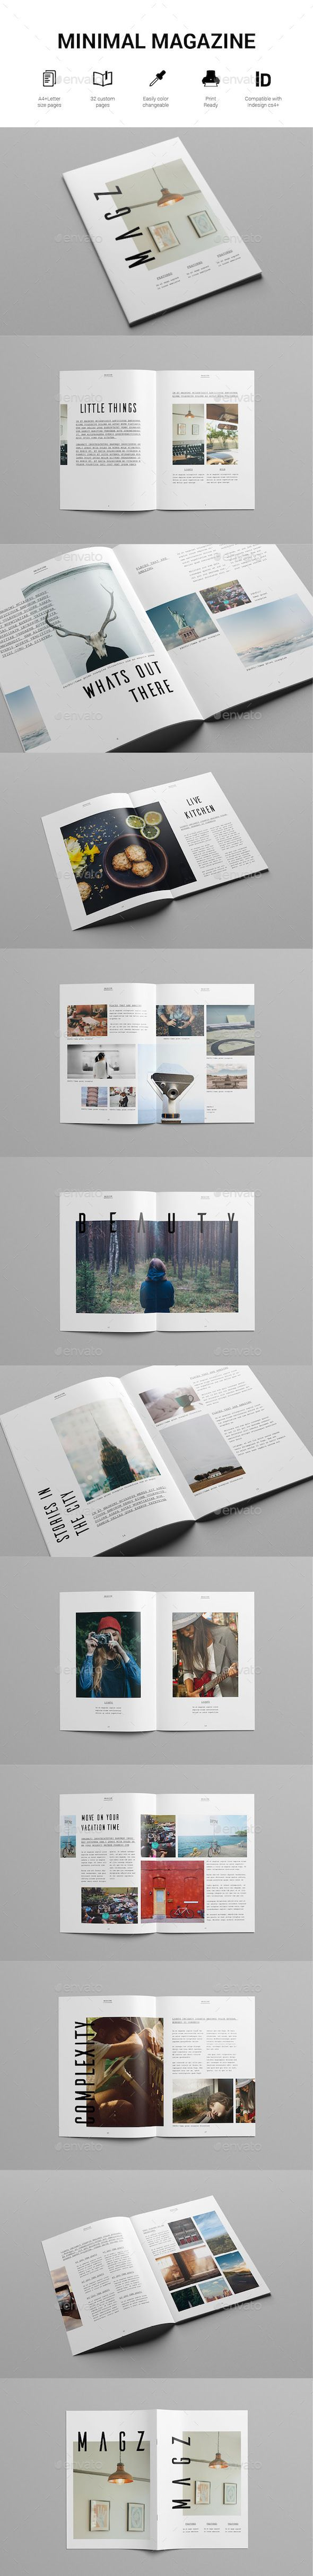 best 25+ magazine layout design ideas on pinterest | magazine